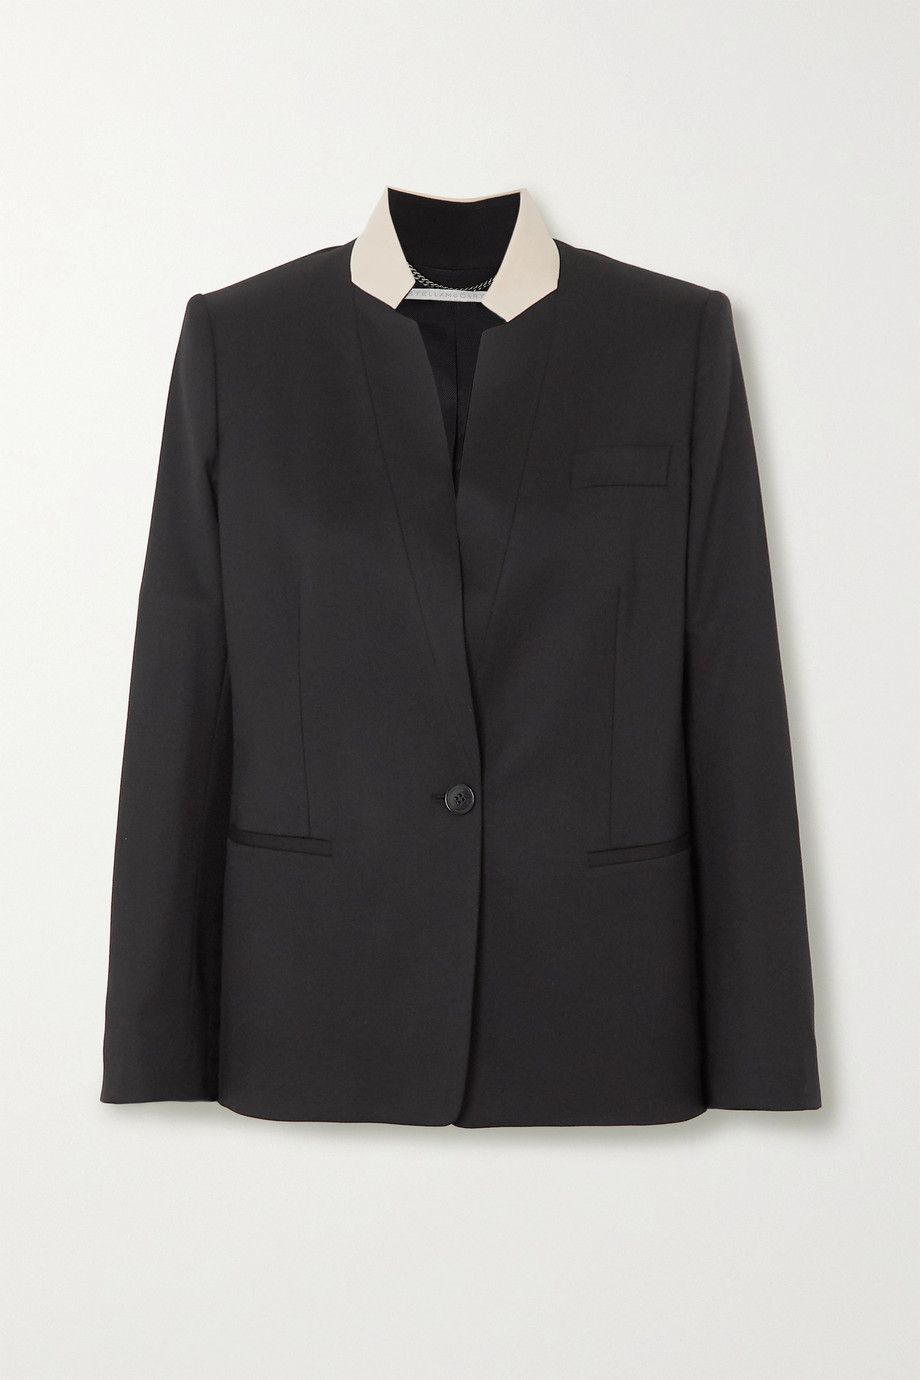 Stella McCartney Two-tone wool blazer